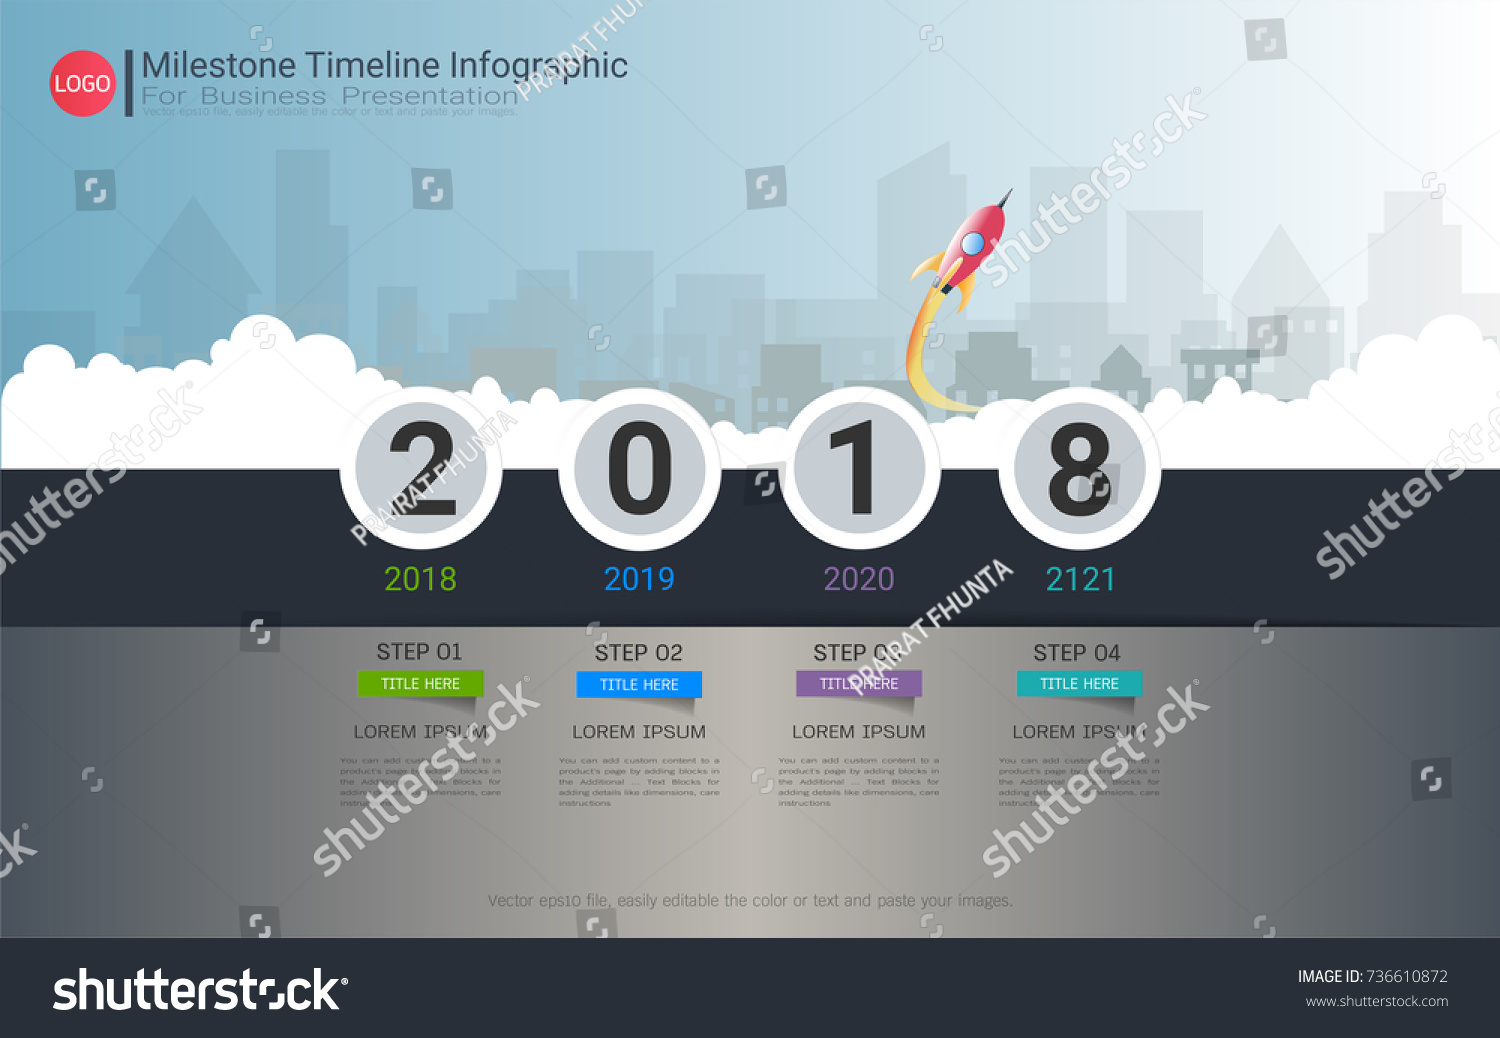 Milestone Timeline Infographic Template Four Steps Stock Photo ...